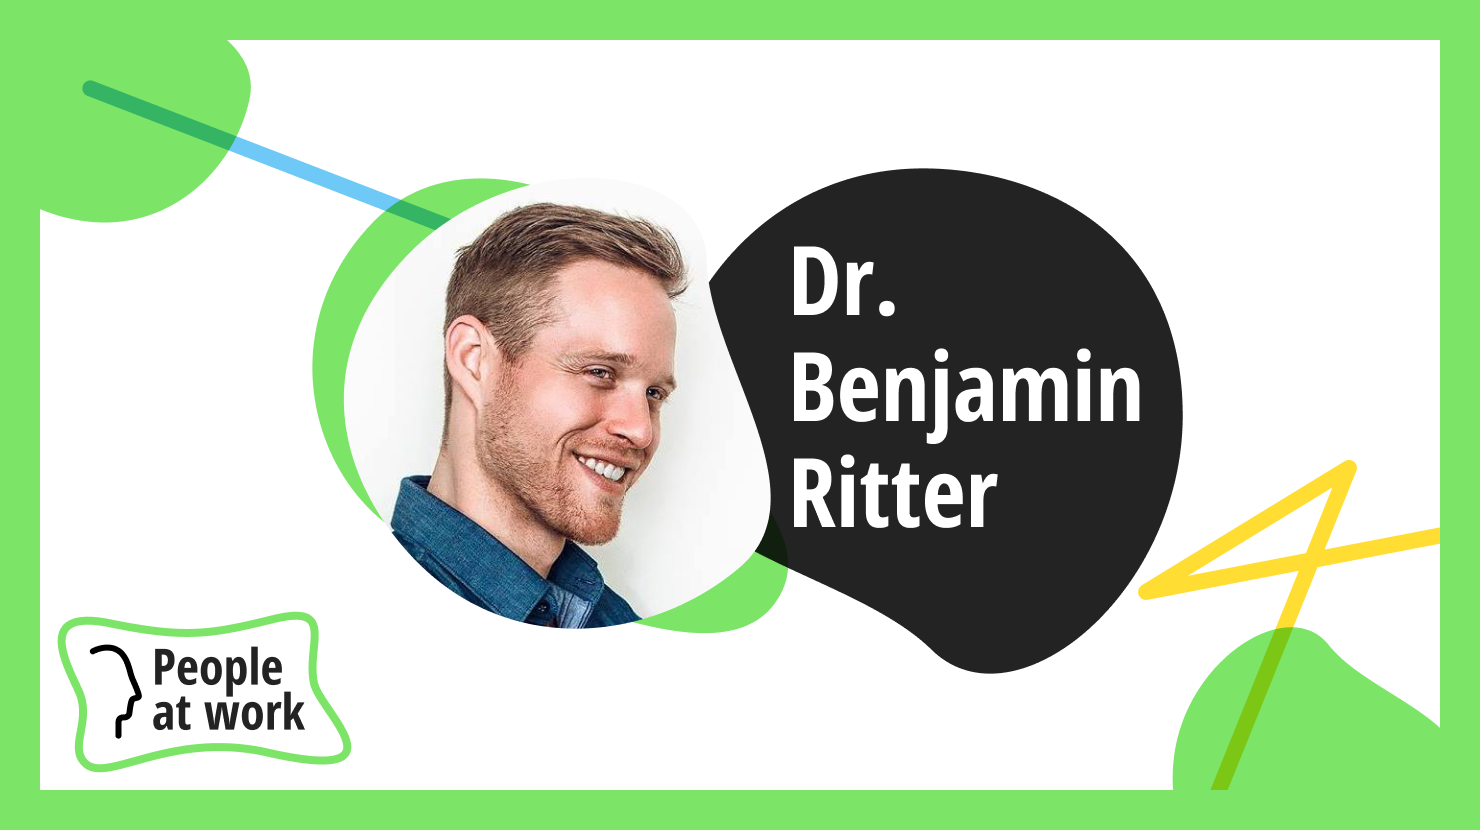 Job crafting is the way forward with Dr. Benjamin Ritter